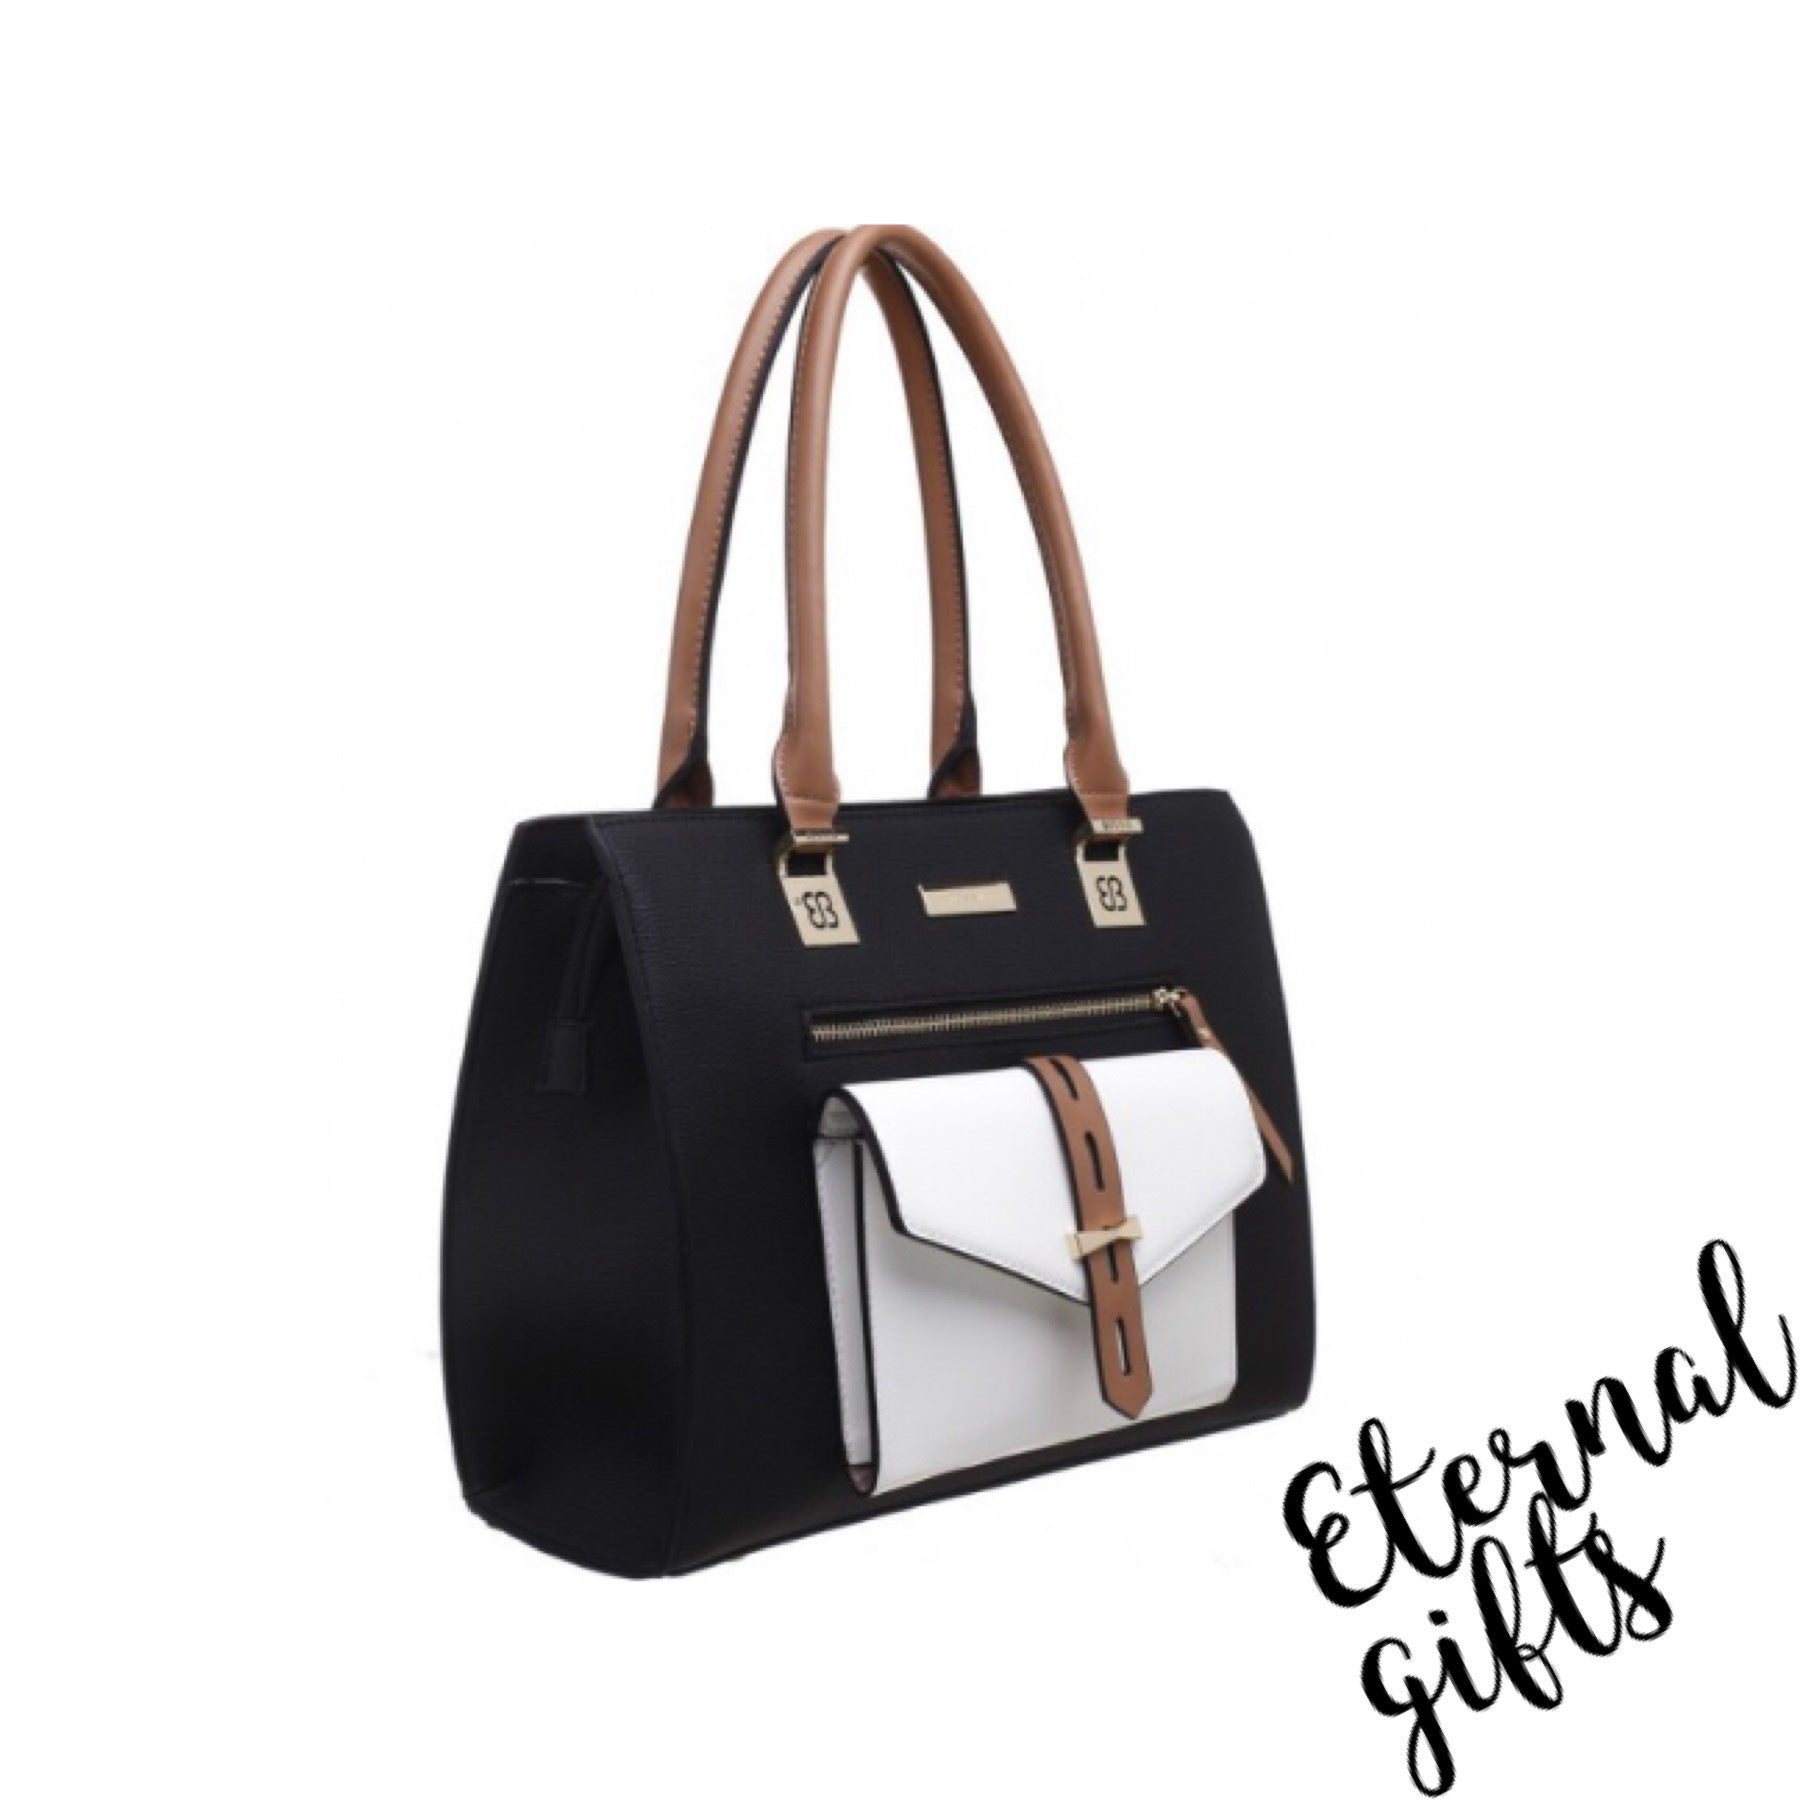 Classical Three Tone Front Pocket Tote Bag In Black